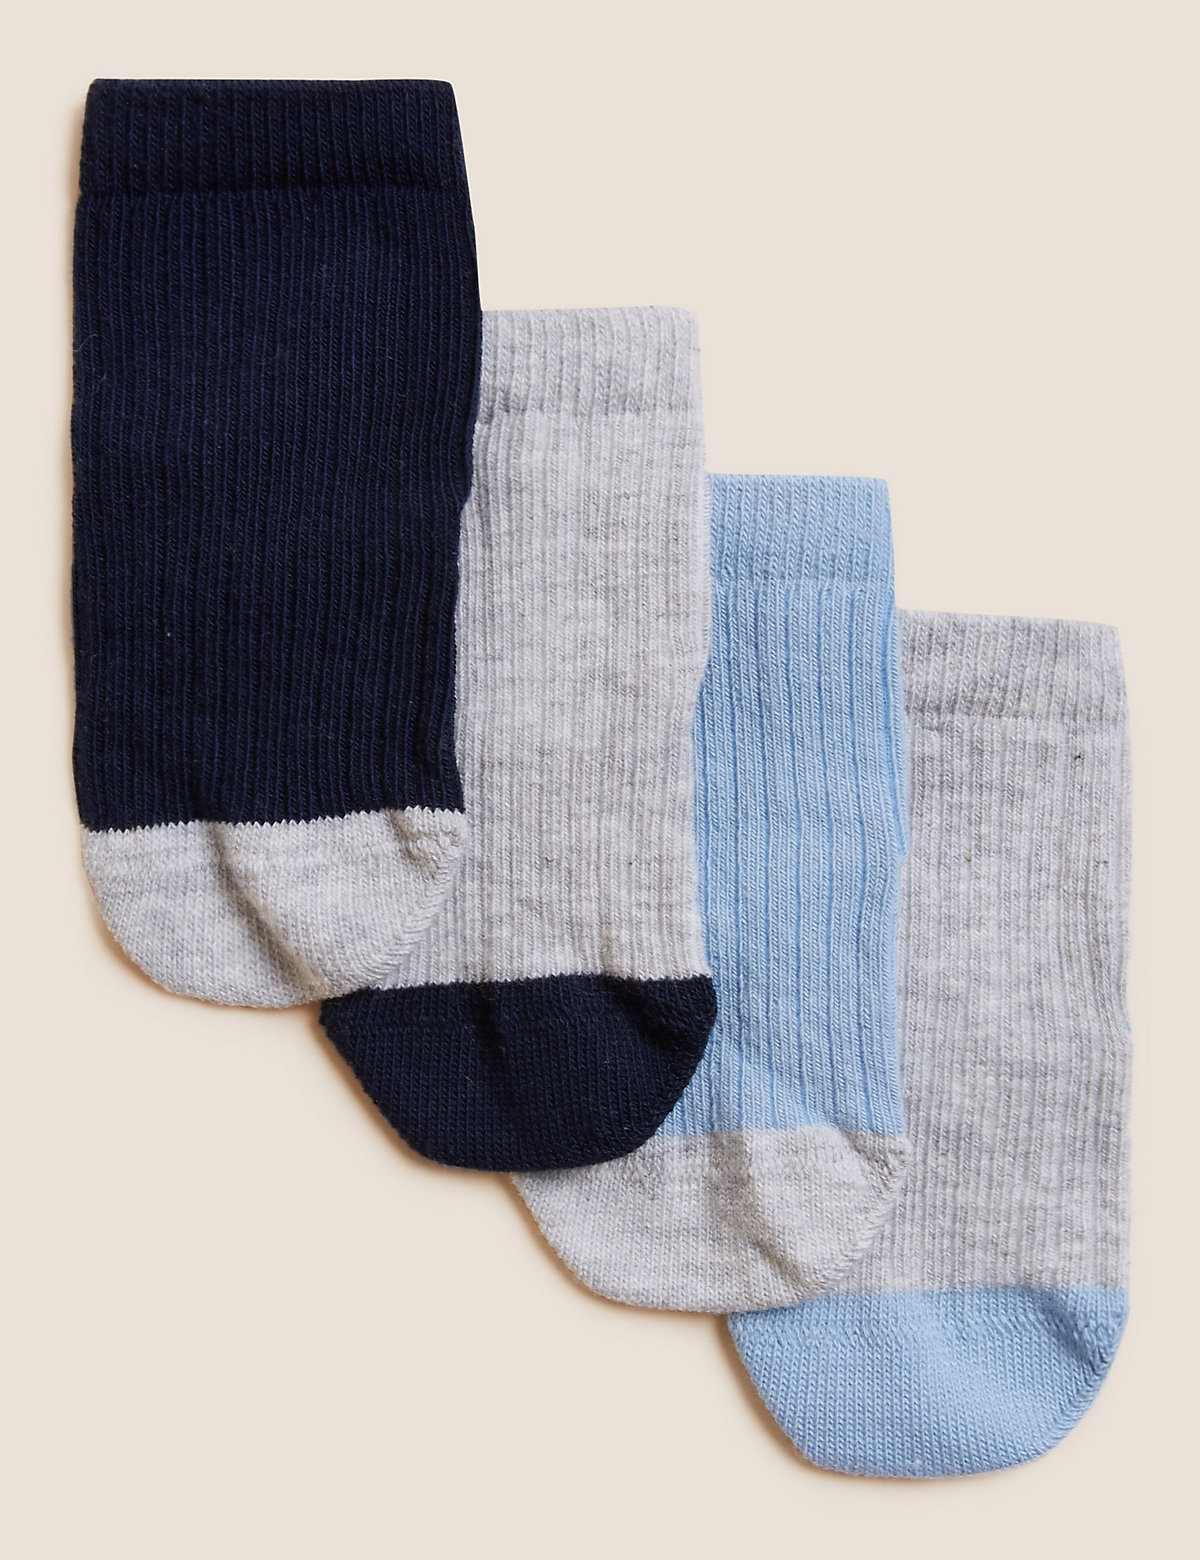 4 Pairs of Cotton Rich Socks with StaySoft (0-24 Months)